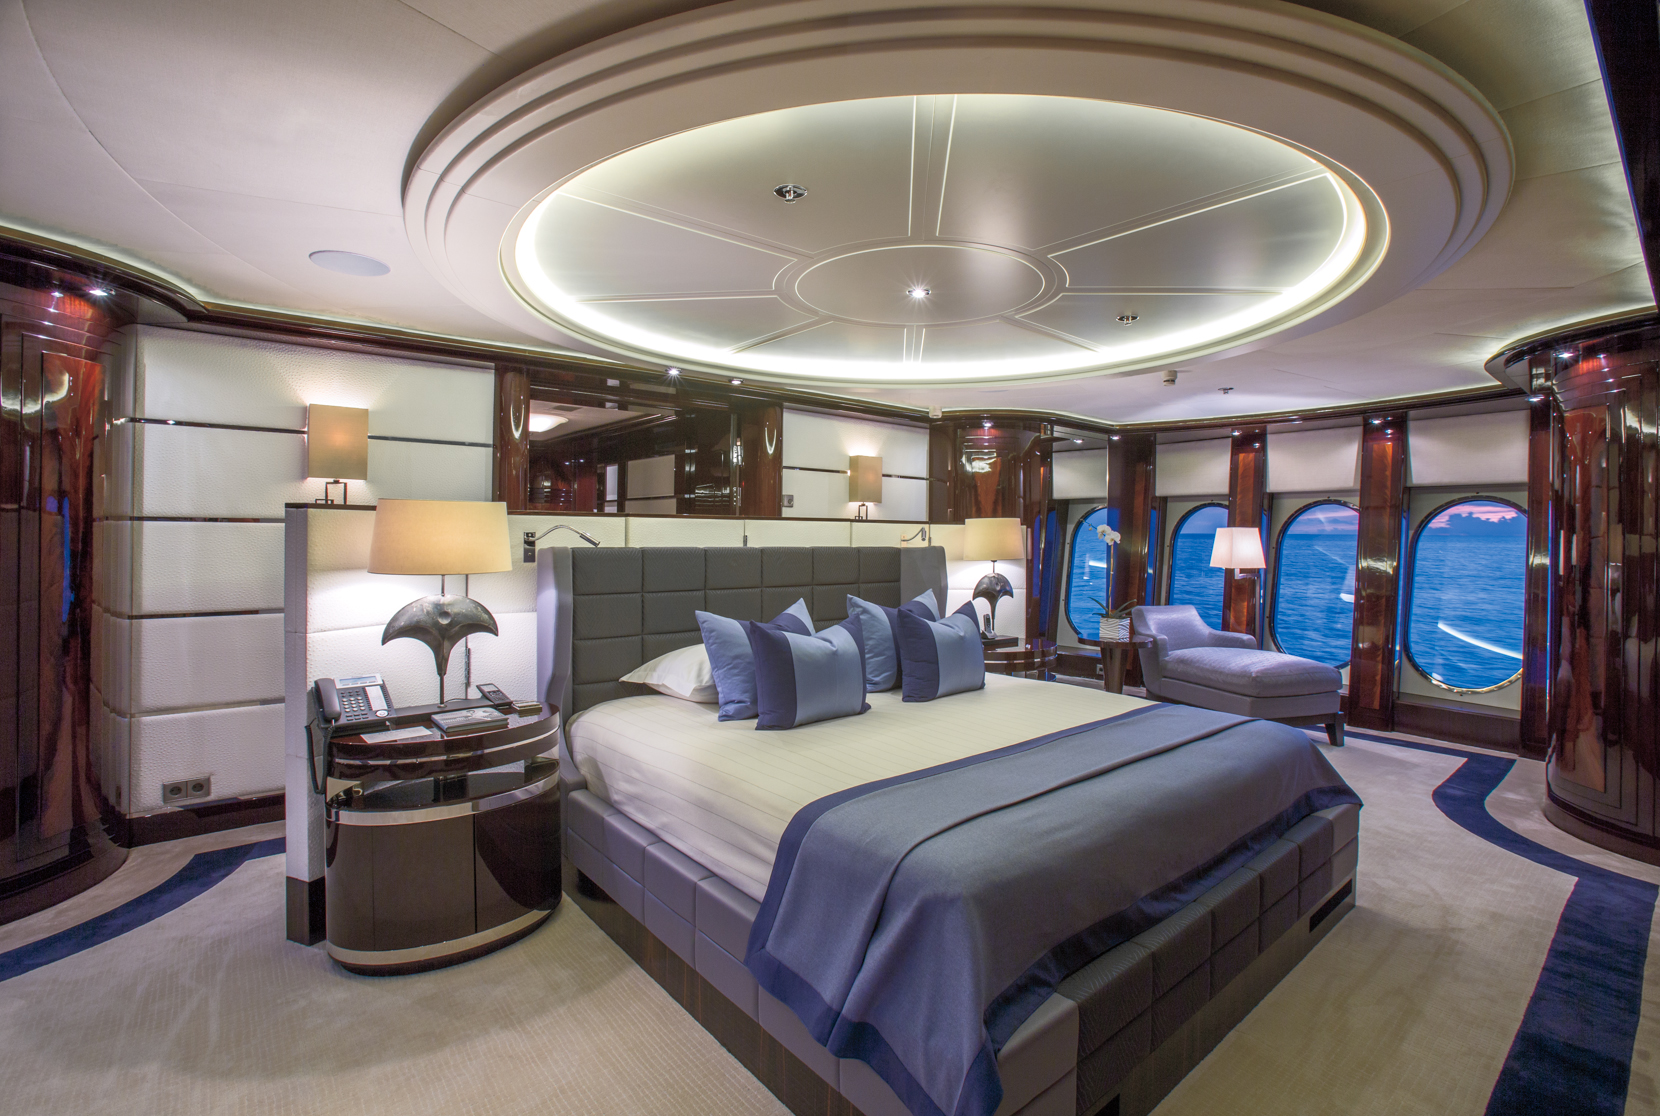 Yacht Dream Master stateroom